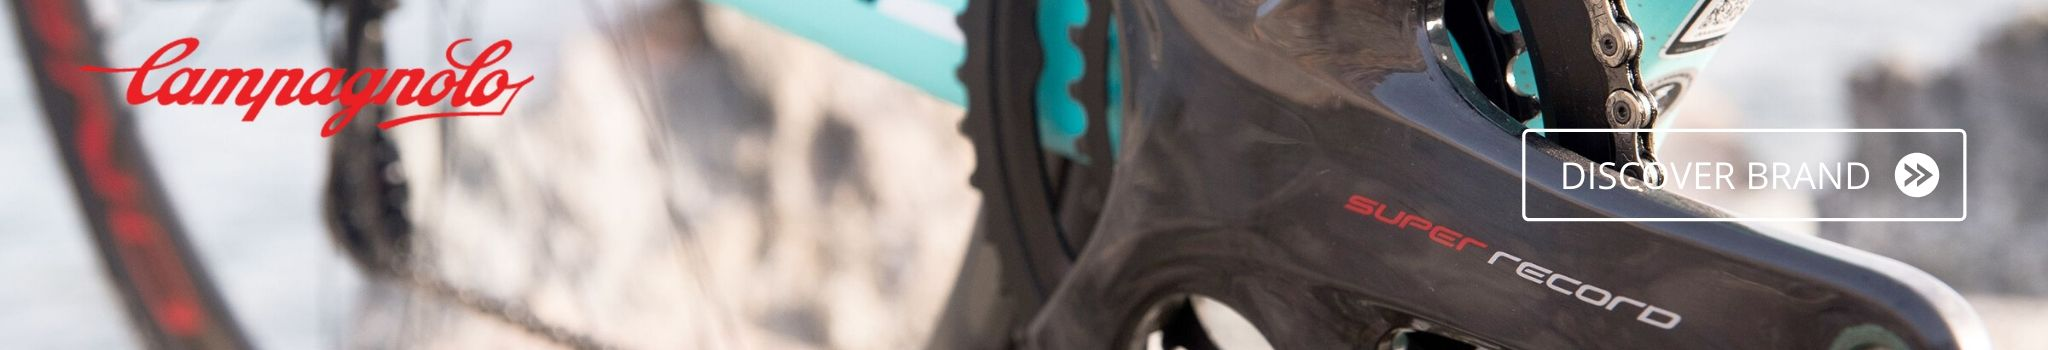 Campagnolo India | Bike Wheel and Groupsets